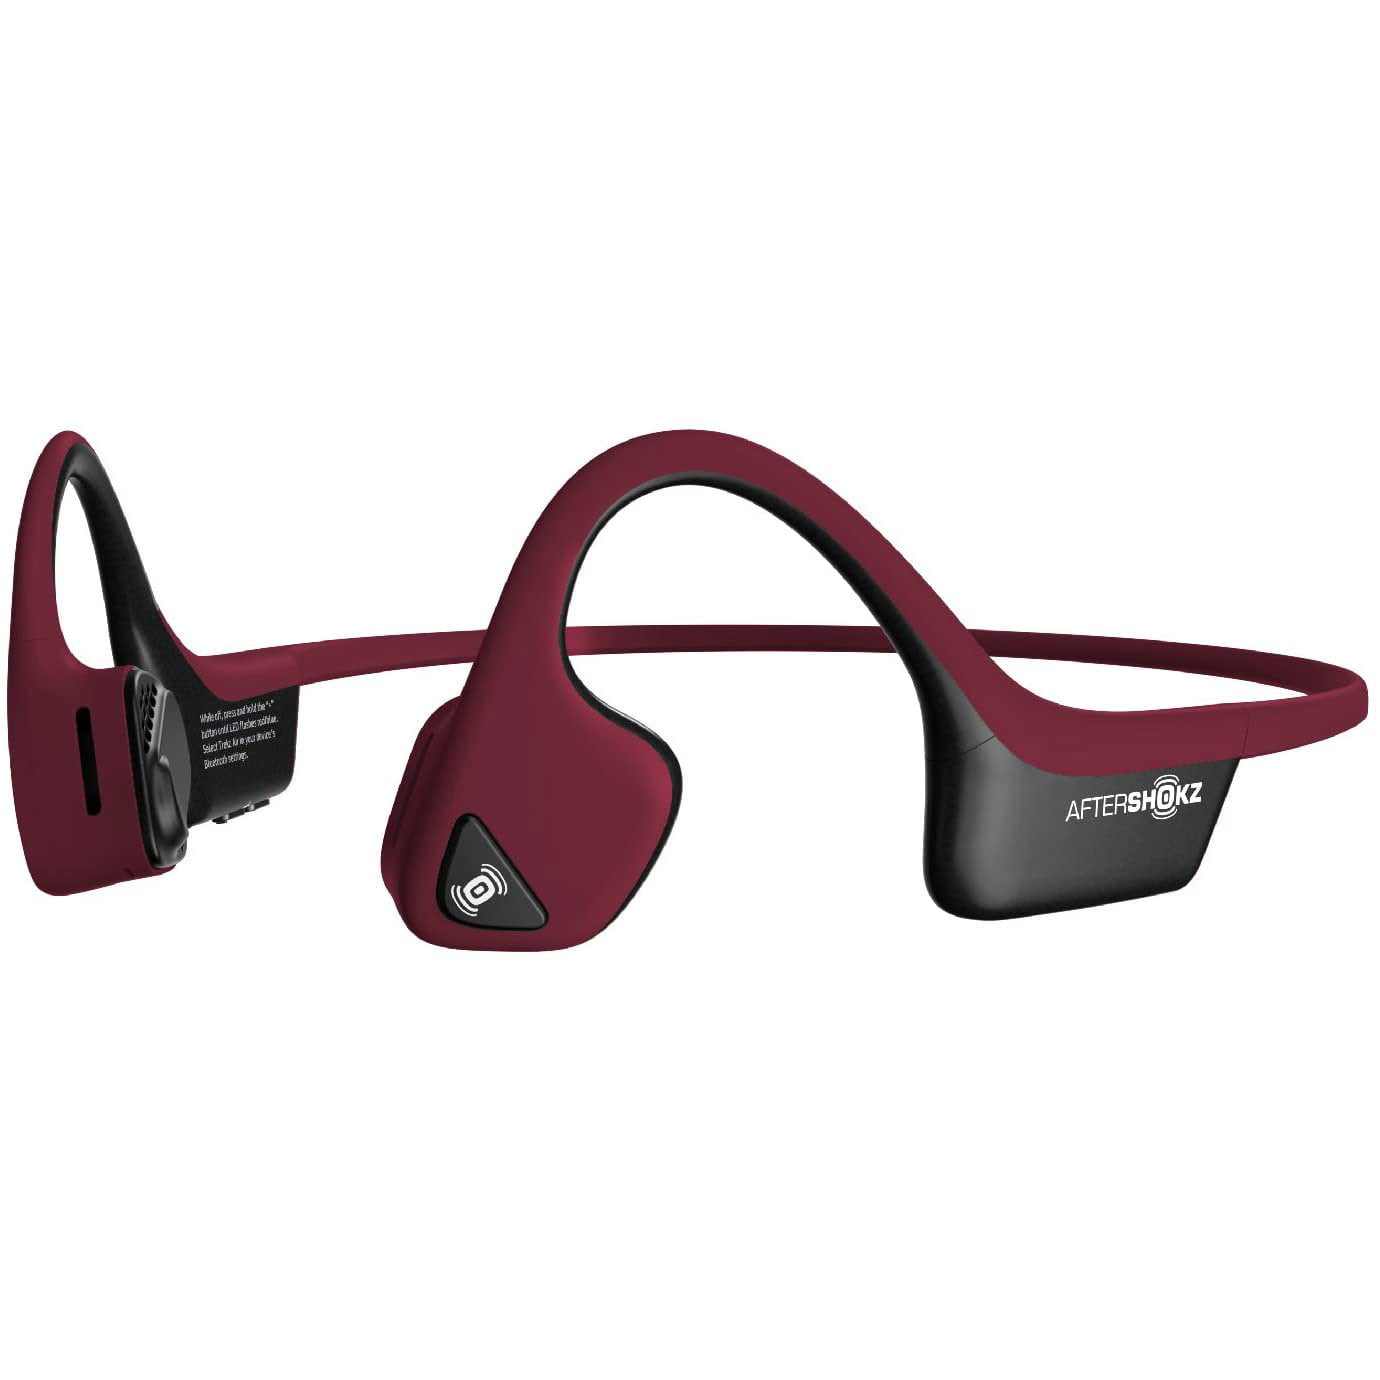 Casti Behind the Ear Aftershokz Trekz Air AS650, Conductie prin os, Wireless, Portable Case, IP55, Canyon Red